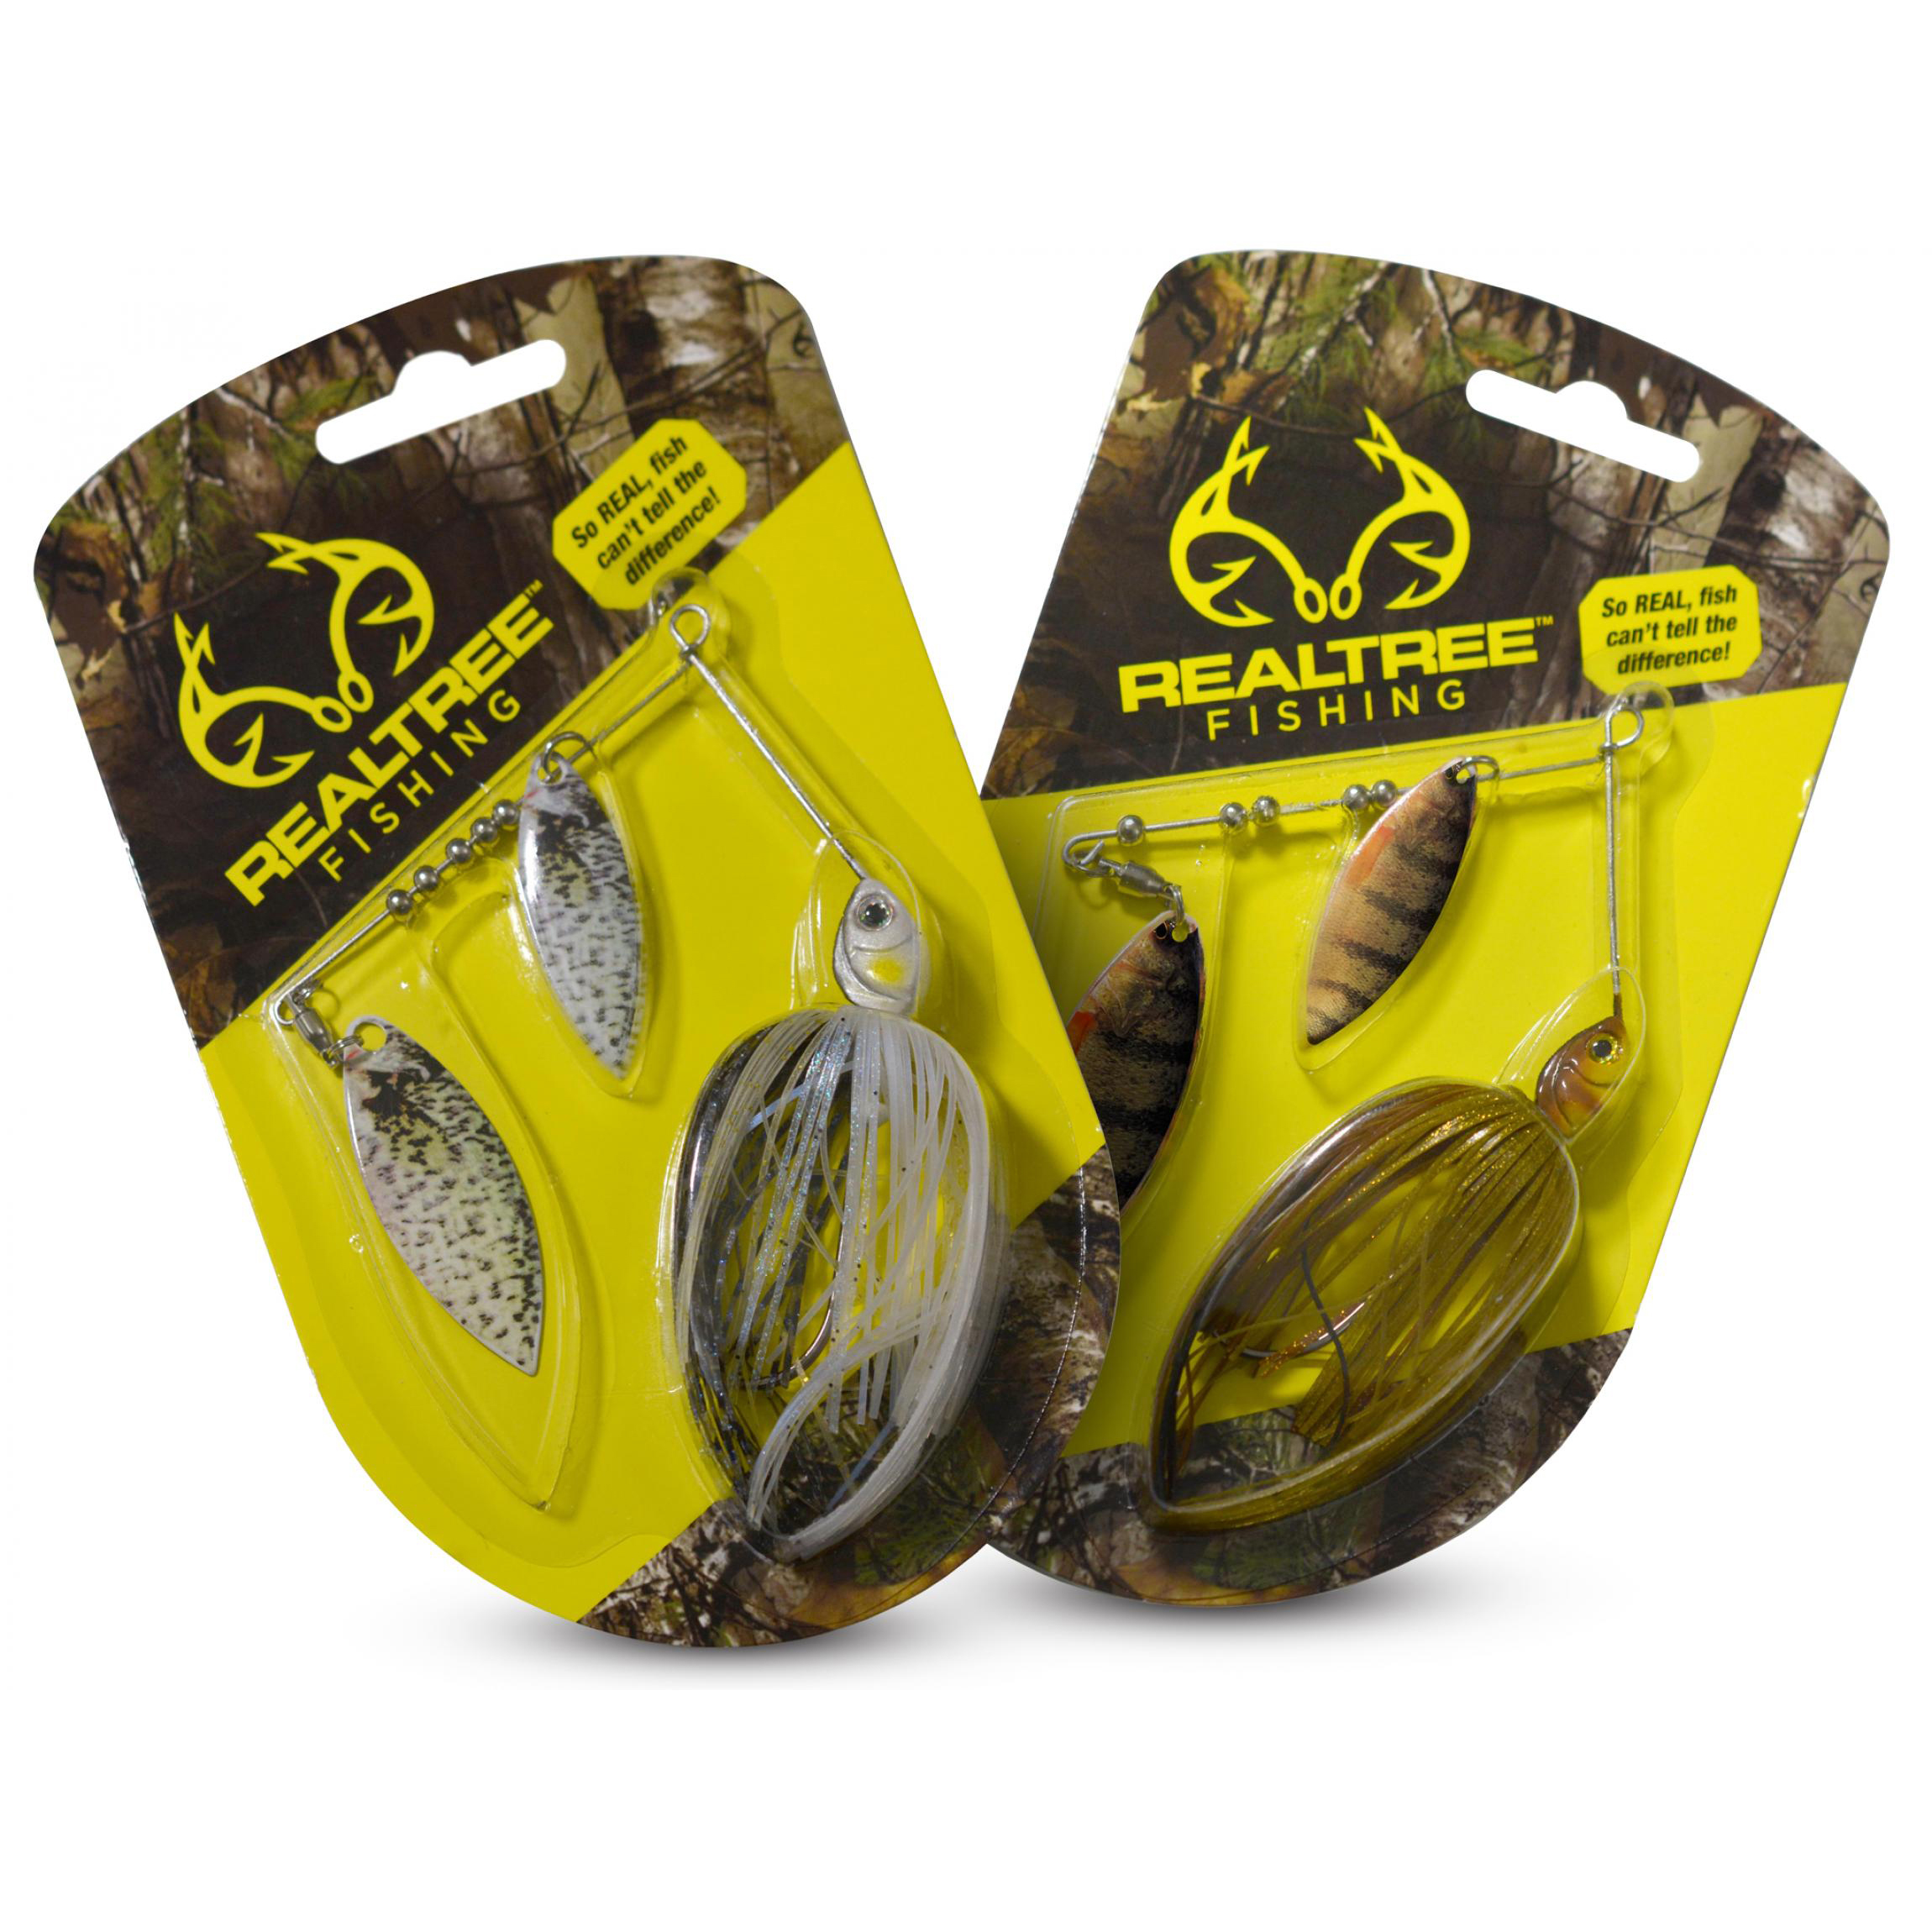 Examples of the packaging design and packaging mockups we created for the new RealTree Fishing™ line.